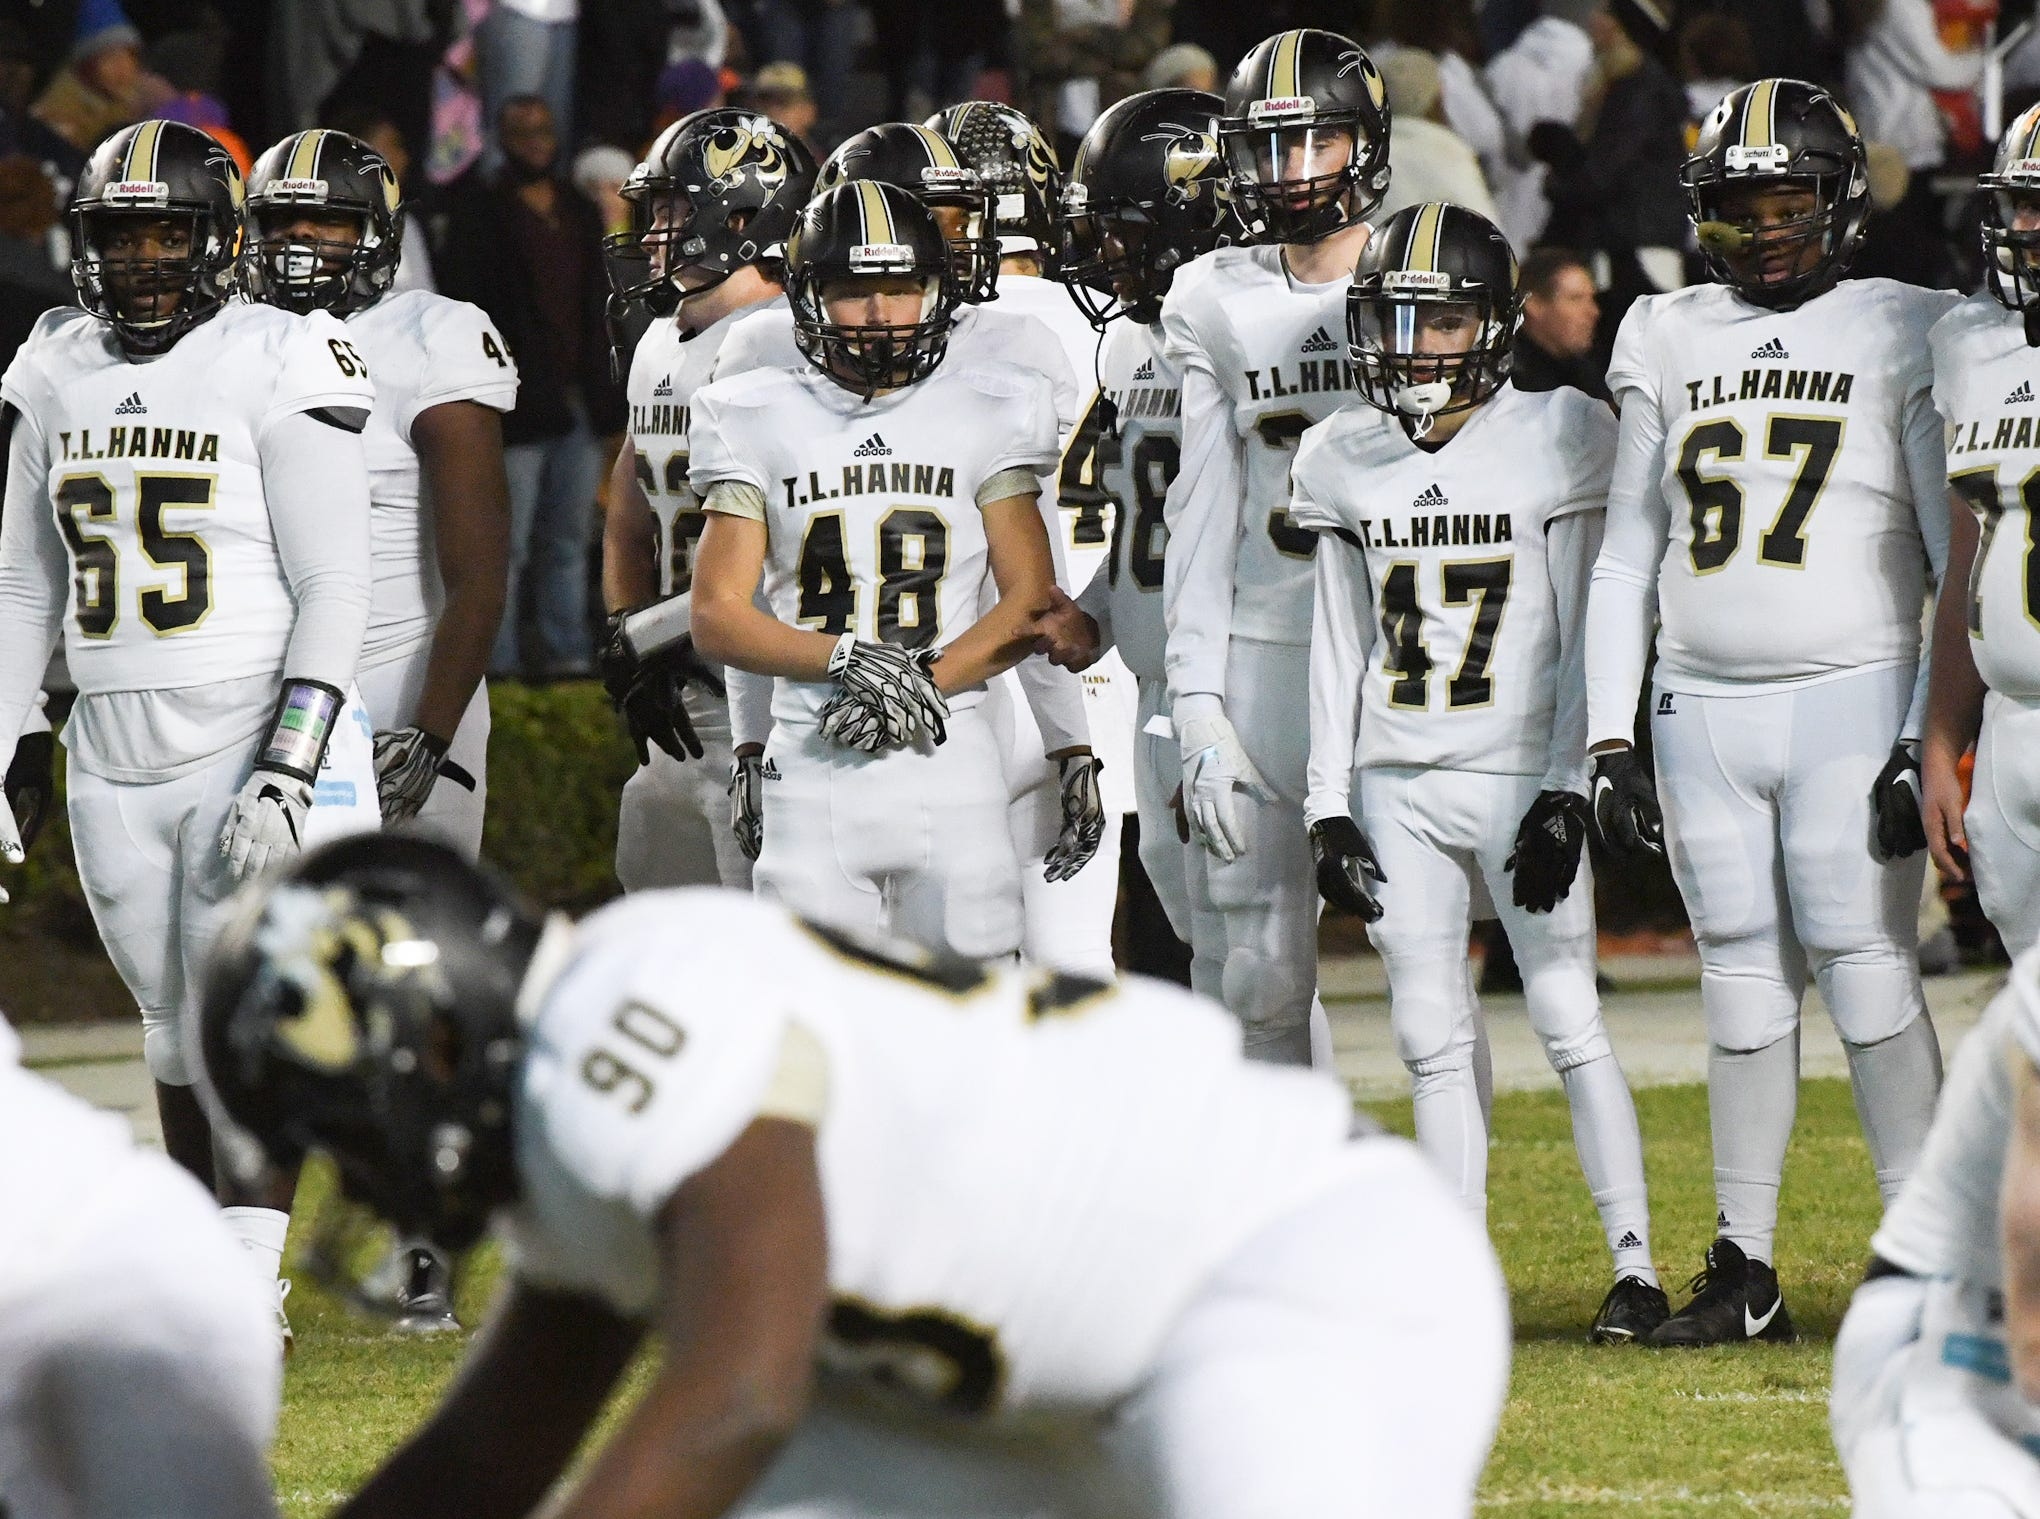 TL Hanna senior Russell Hamby (48), middle, and others watch teammates warm up before the kickoff of the Class AAAAA state championship game at Williams-Brice Stadium in Columbia Saturday, December 8, 2018.